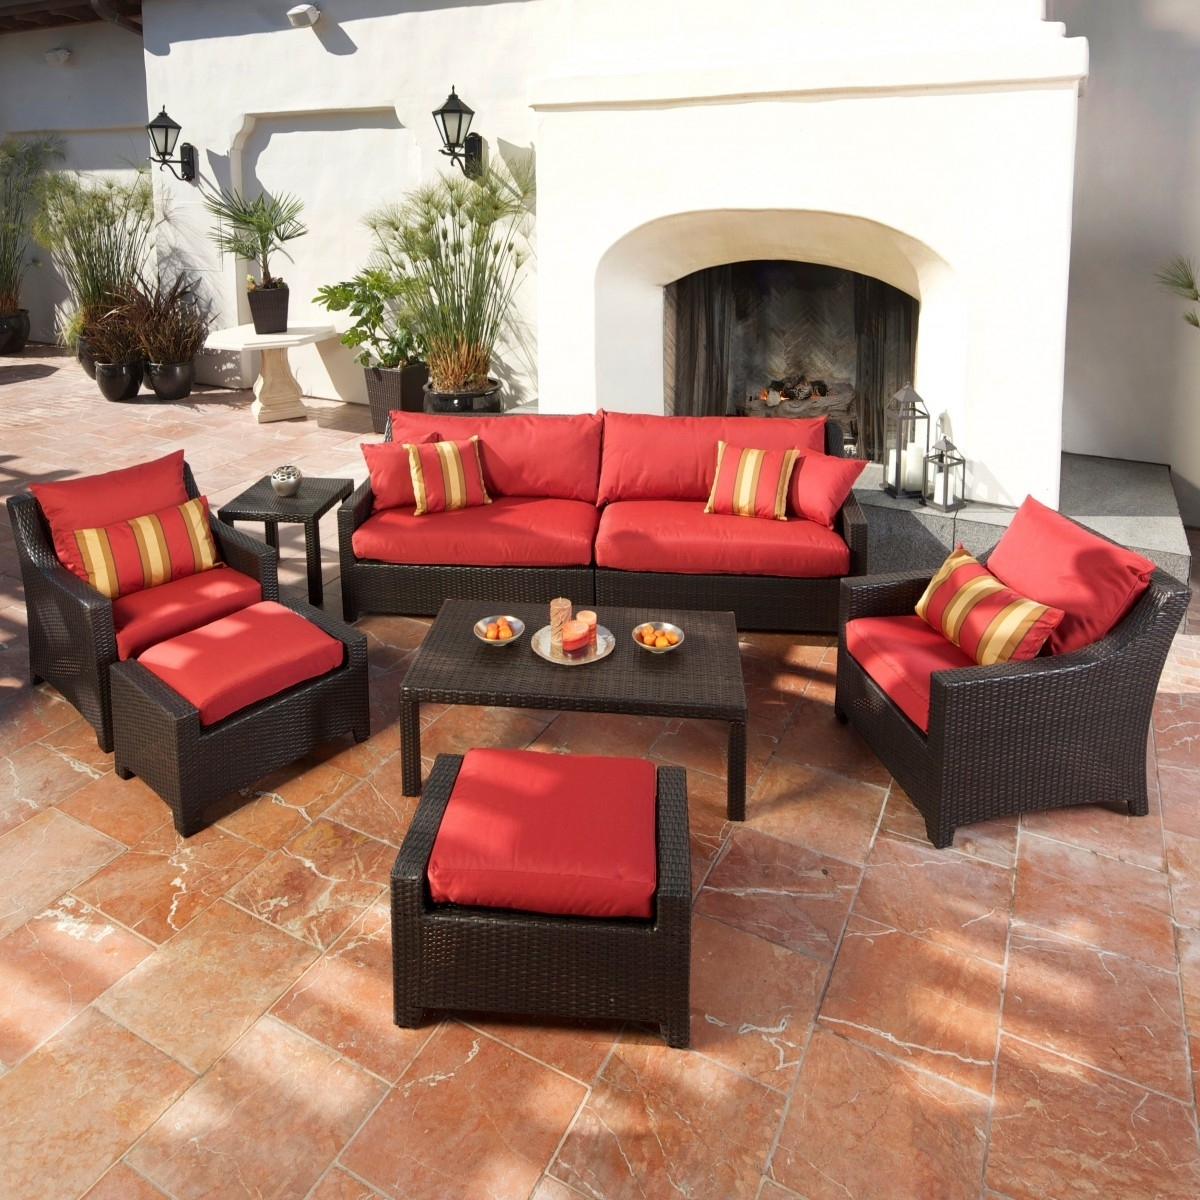 Cantina 7 Piece Sofa Seating Set With Chairs, Ottomans, Side Table Inside Popular Patio Conversation Sets With Ottomans (View 2 of 15)